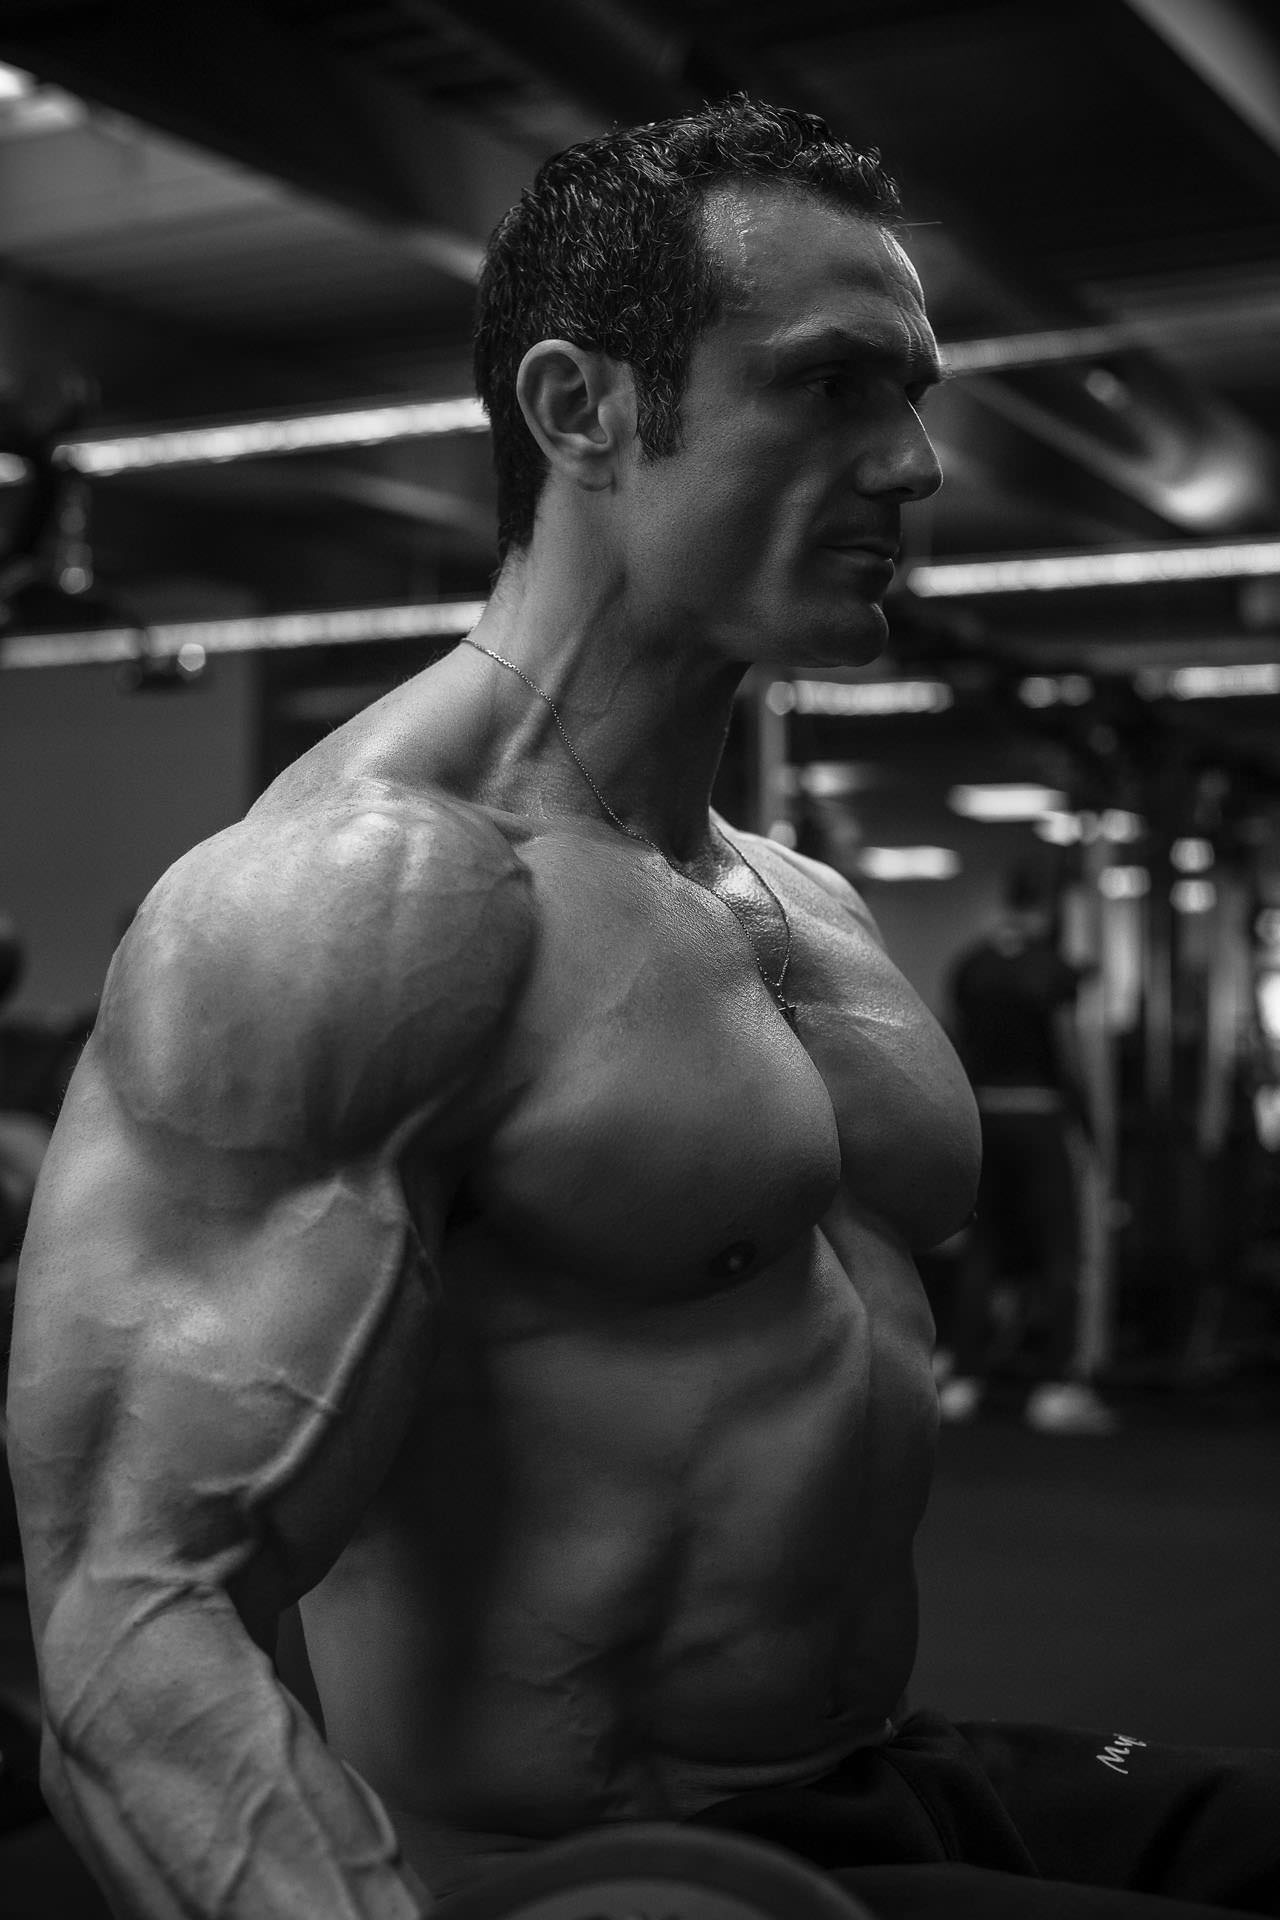 2017-02-24 - Enzo Foukra - MyMuscle - FitnessPark - 4388 - 1920px